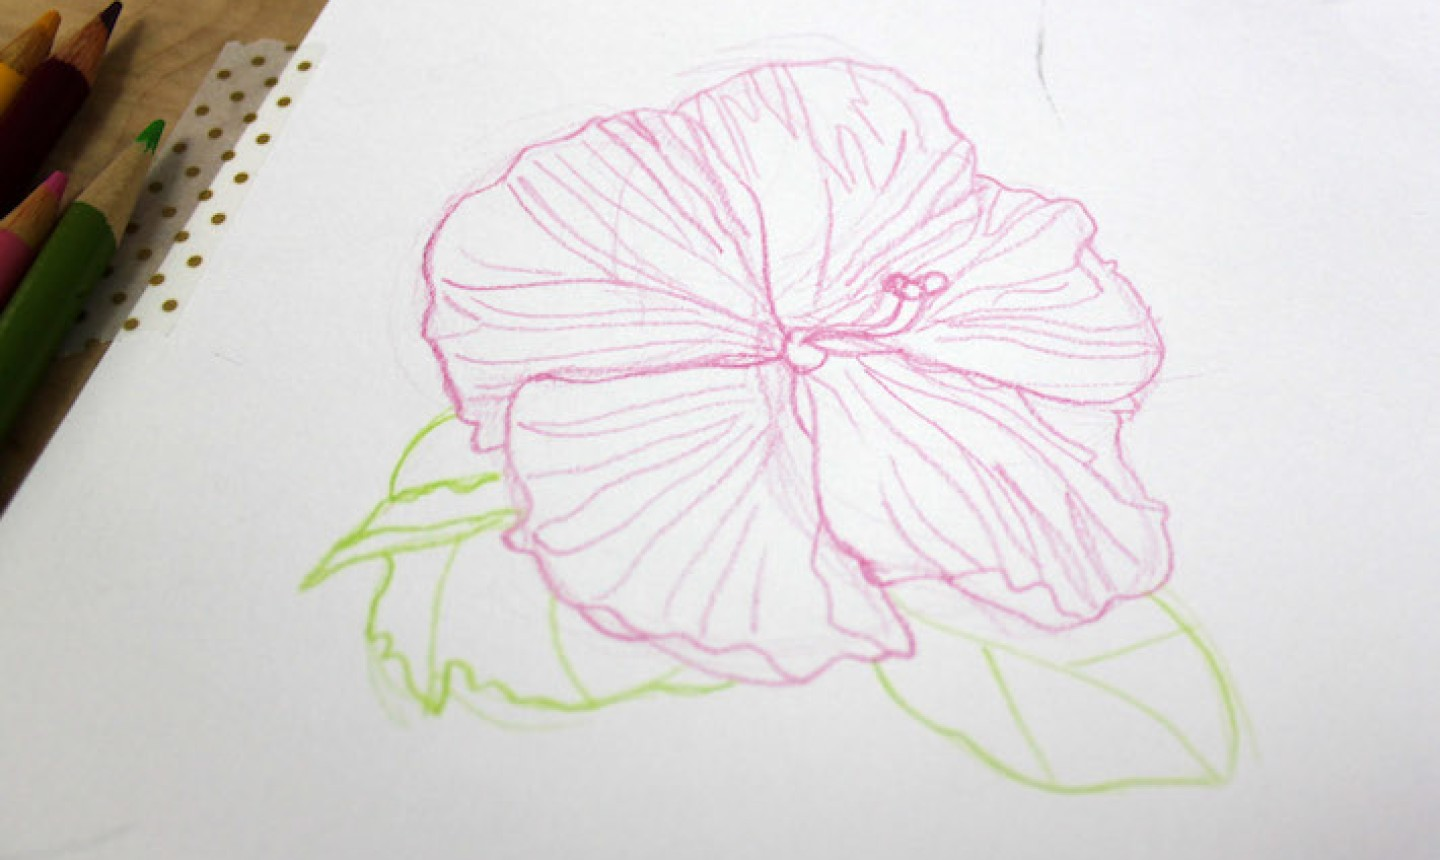 detail sketch of colored pencil flower